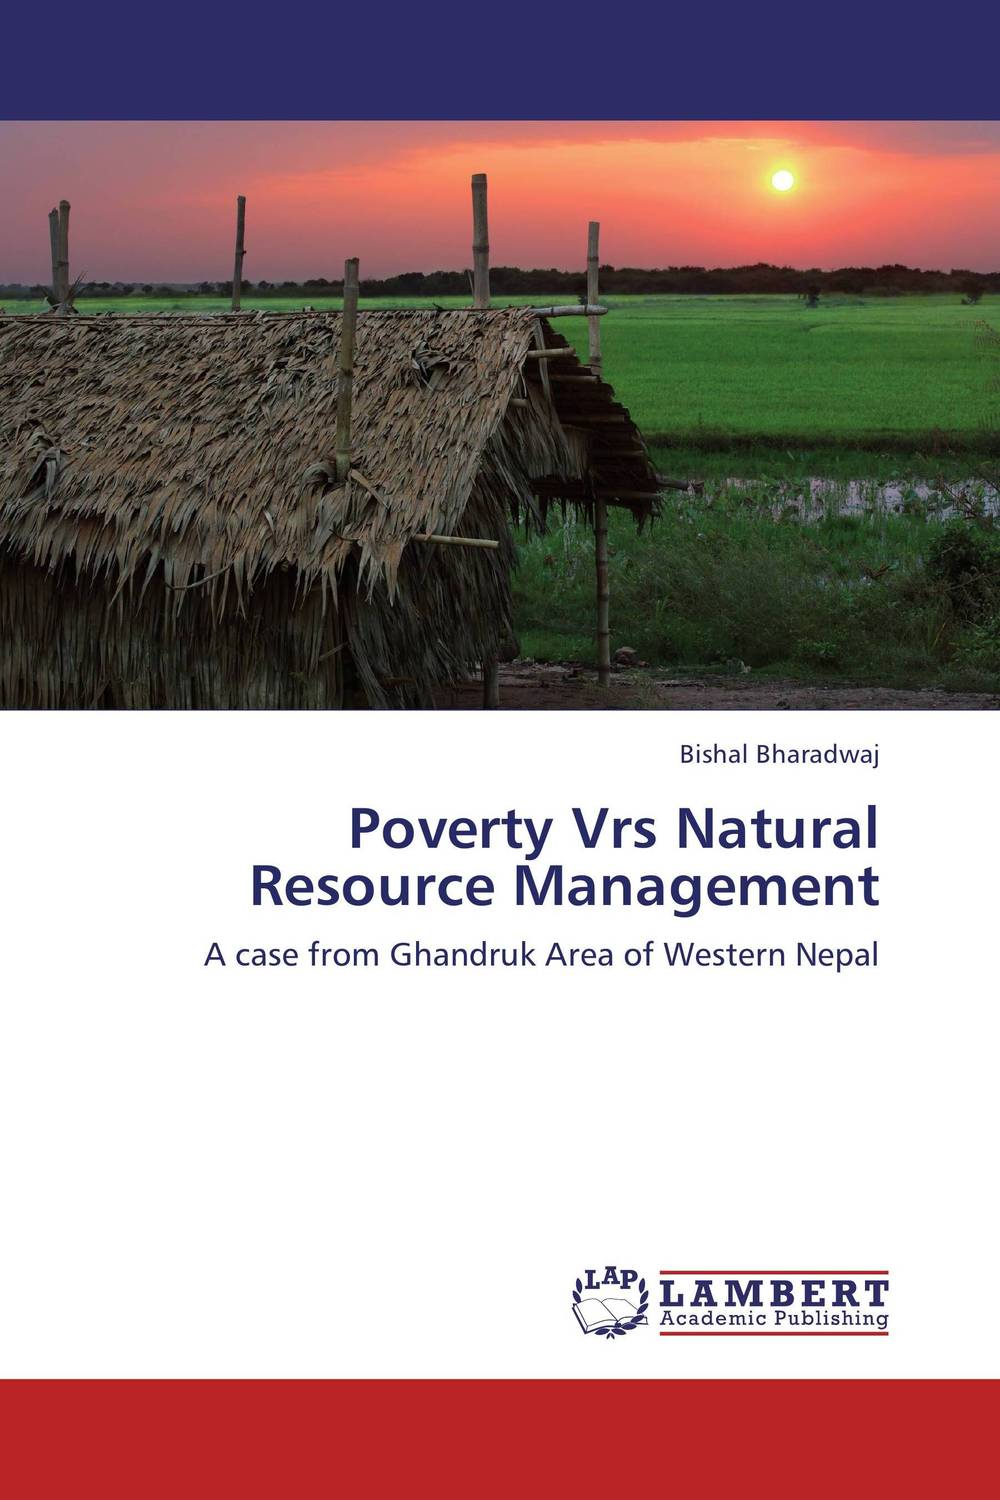 Poverty Vrs Natural Resource Management livestock grazing and natural resource management in kumaon hills